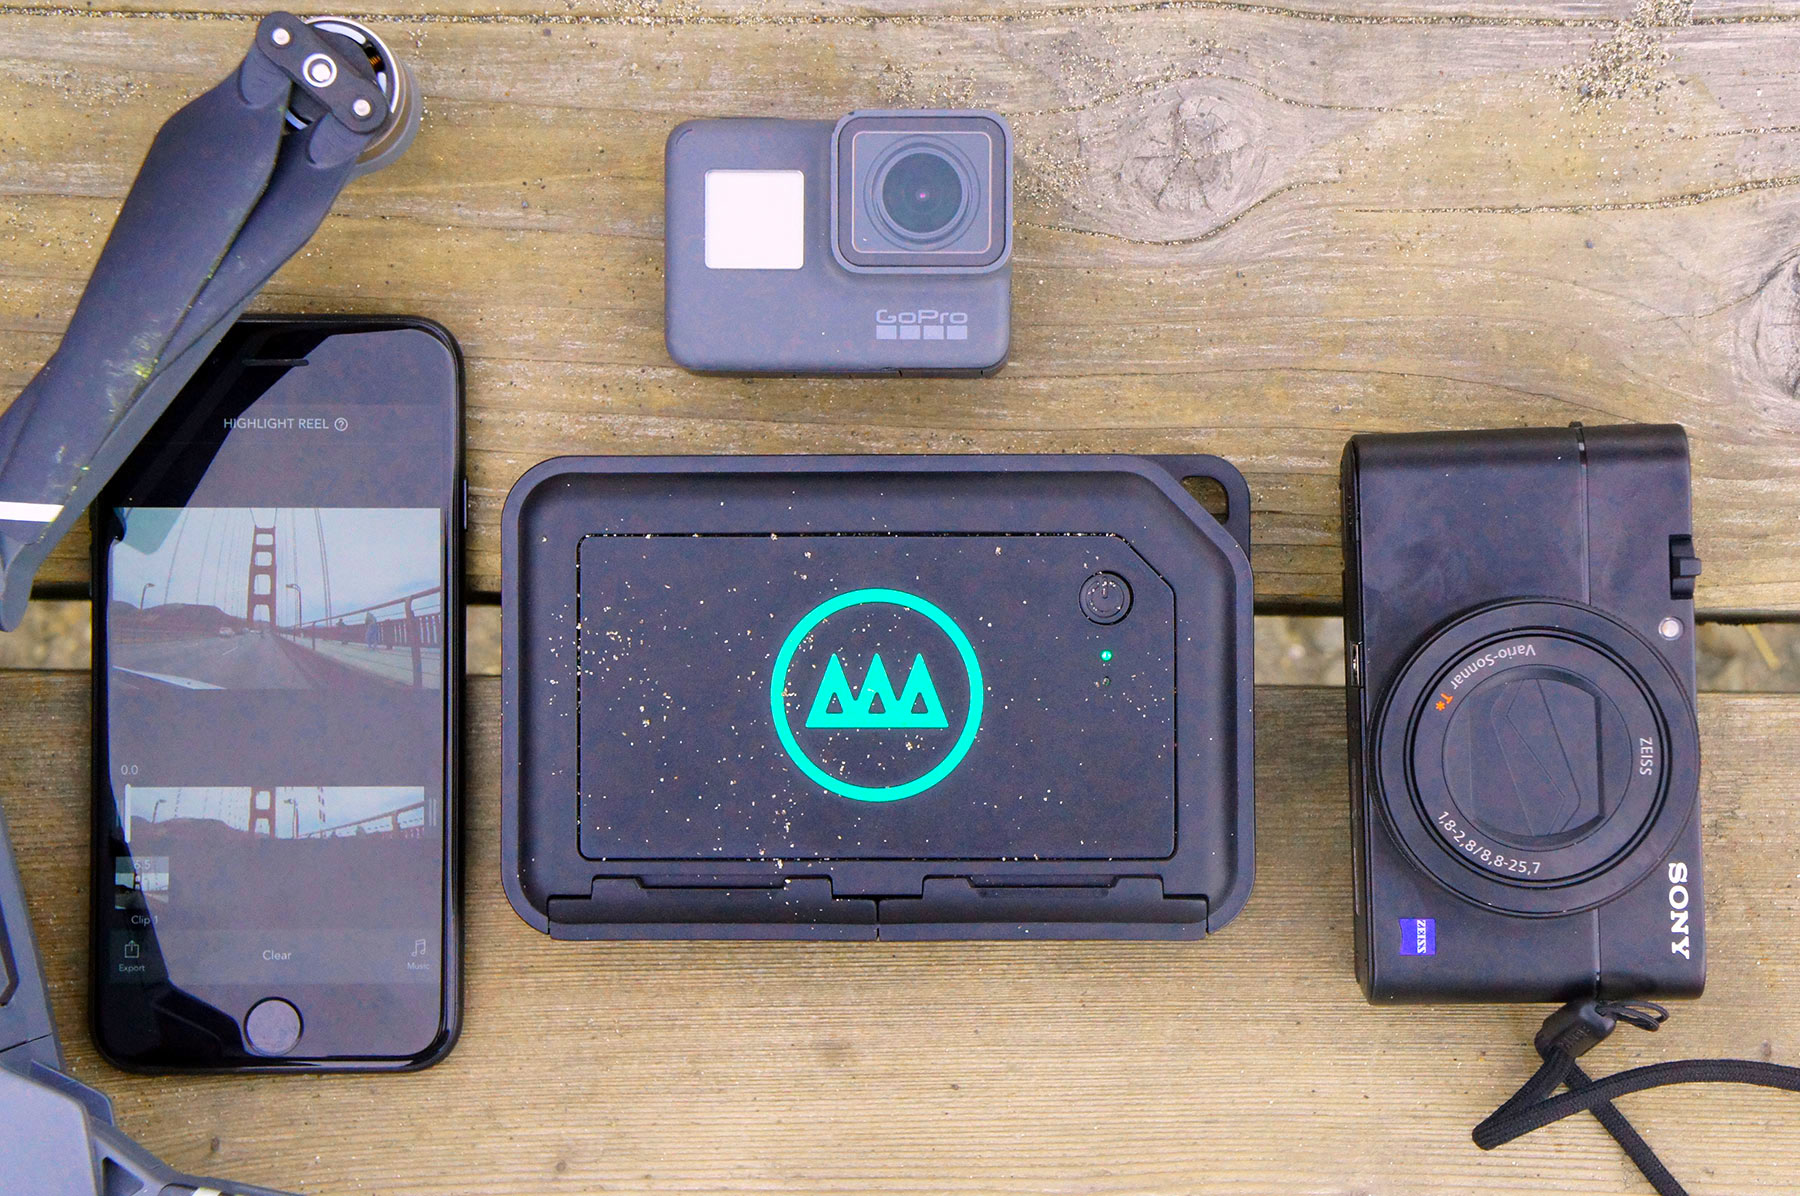 Gnarbox turns your phone into a 4K video editing studio